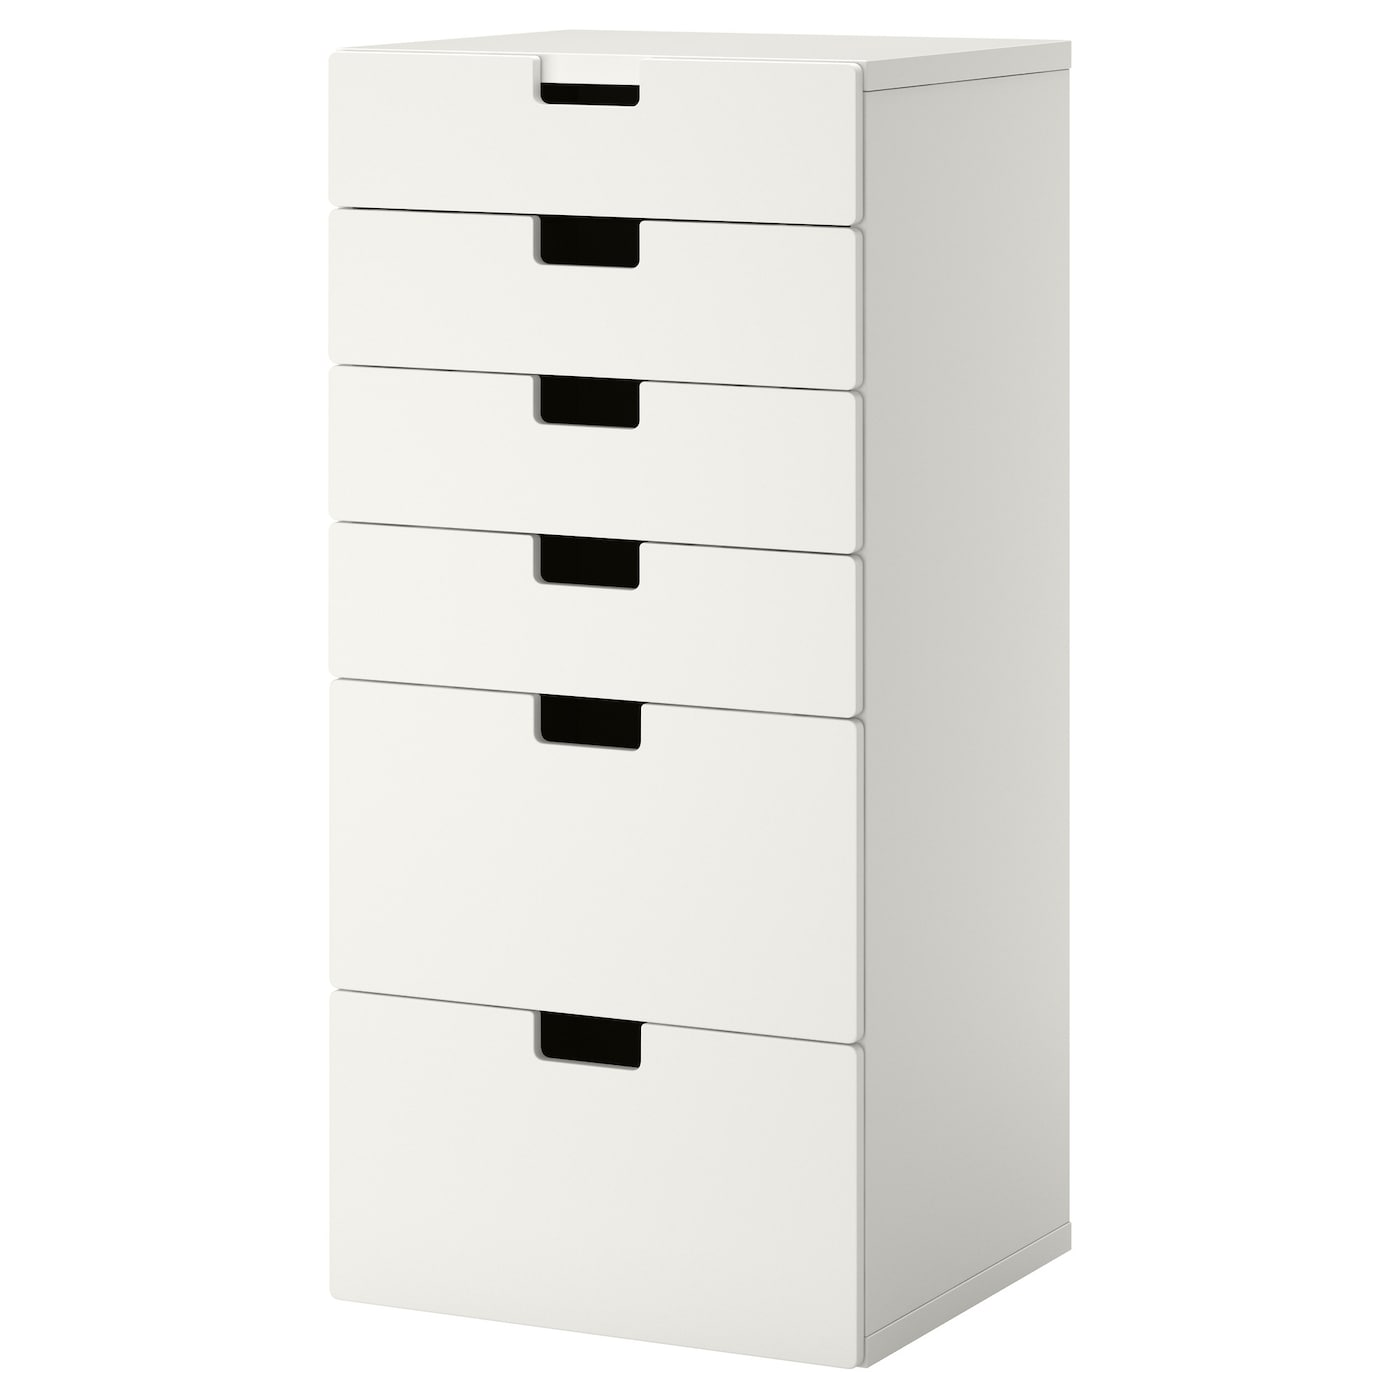 stuva storage combination with drawers white white 60x50x128 cm ikea. Black Bedroom Furniture Sets. Home Design Ideas